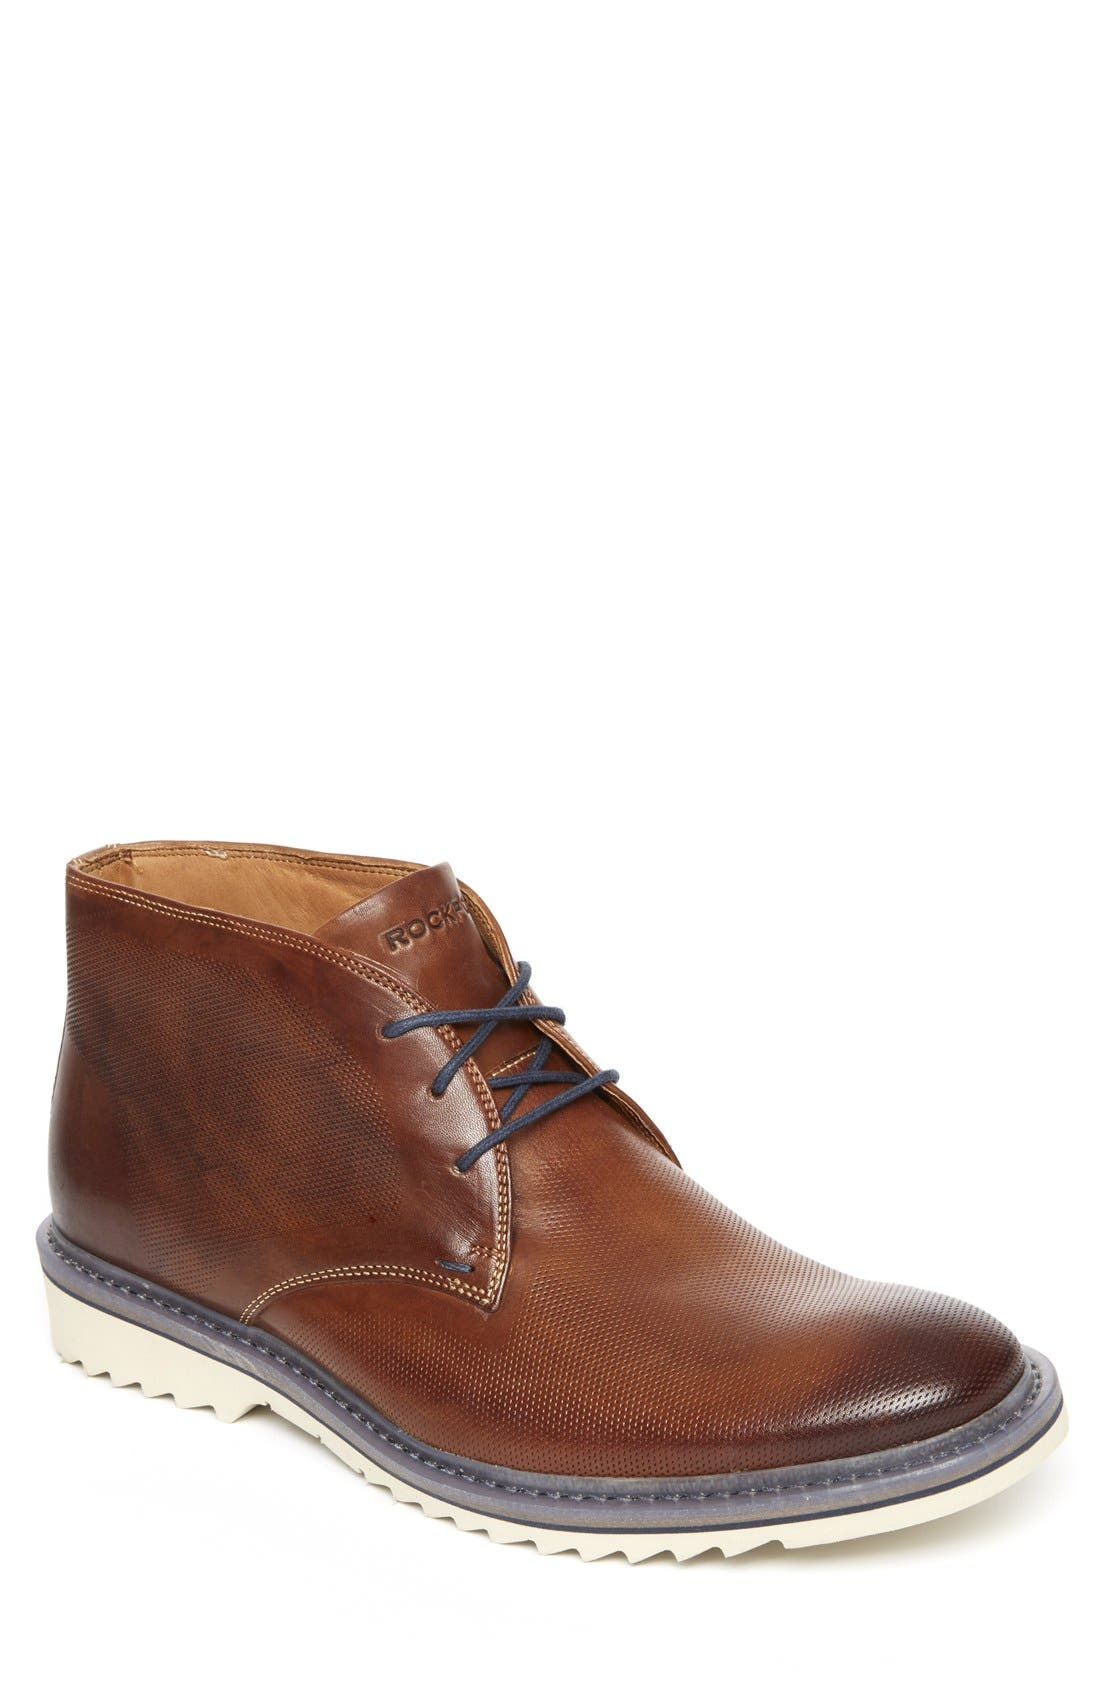 Jaxson Chukka Boot,                         Main,                         color, 200